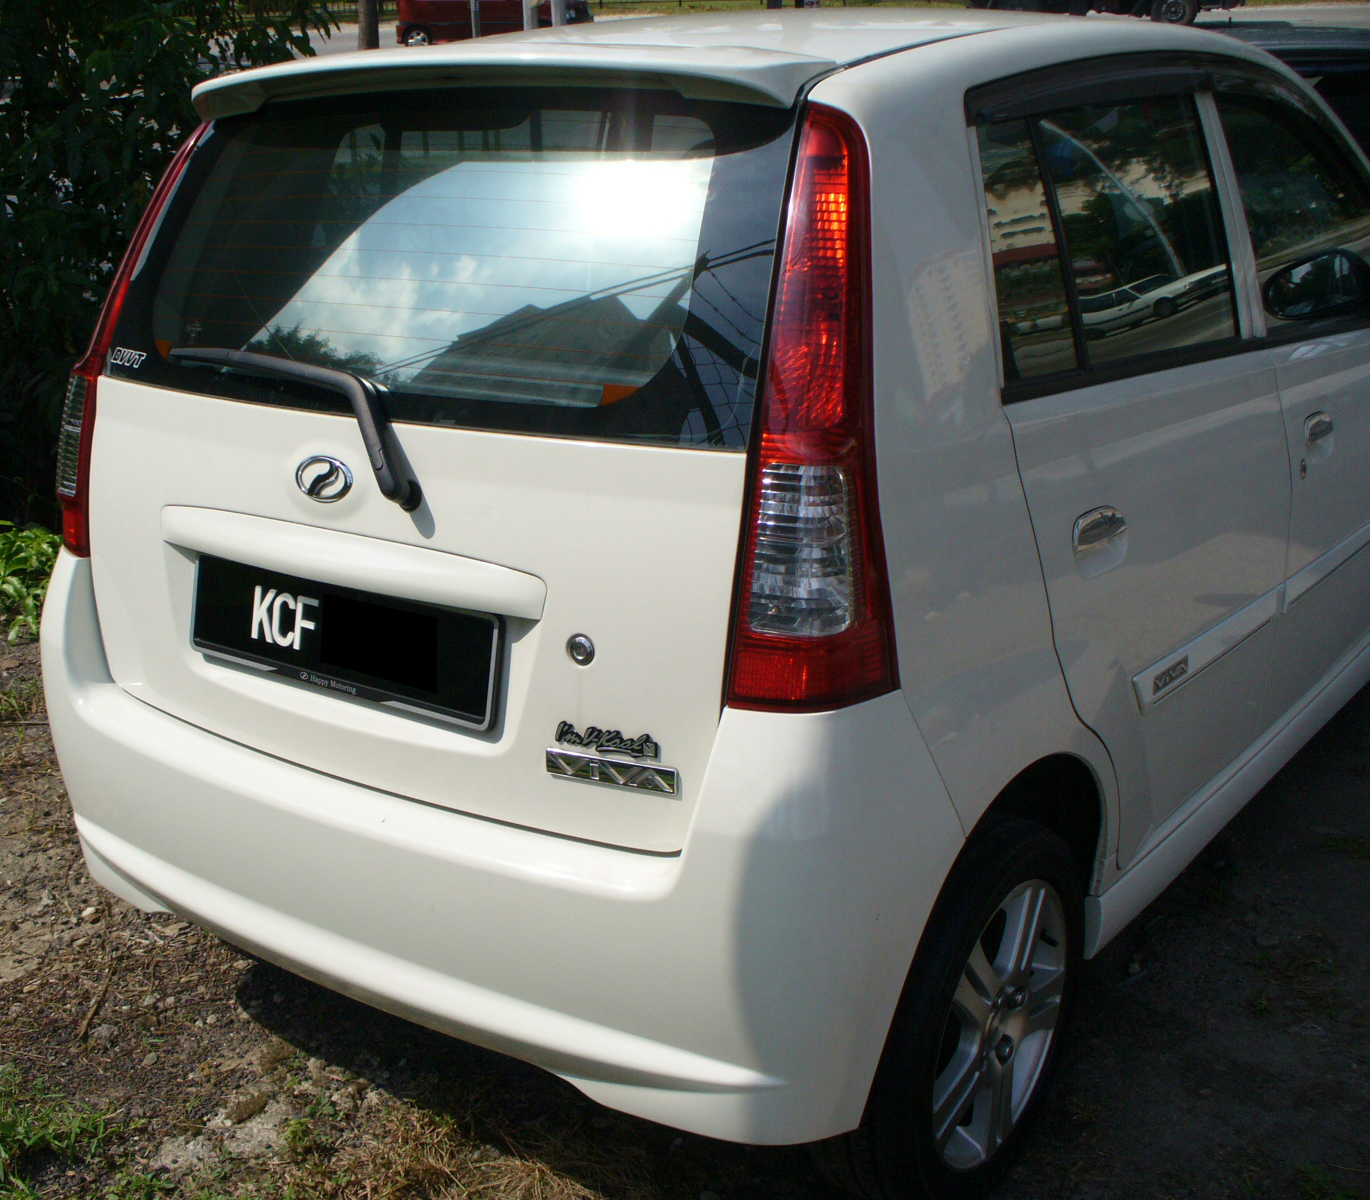 Stream Used Car Perodua Viva 1 0 Manual 2008 Kcf